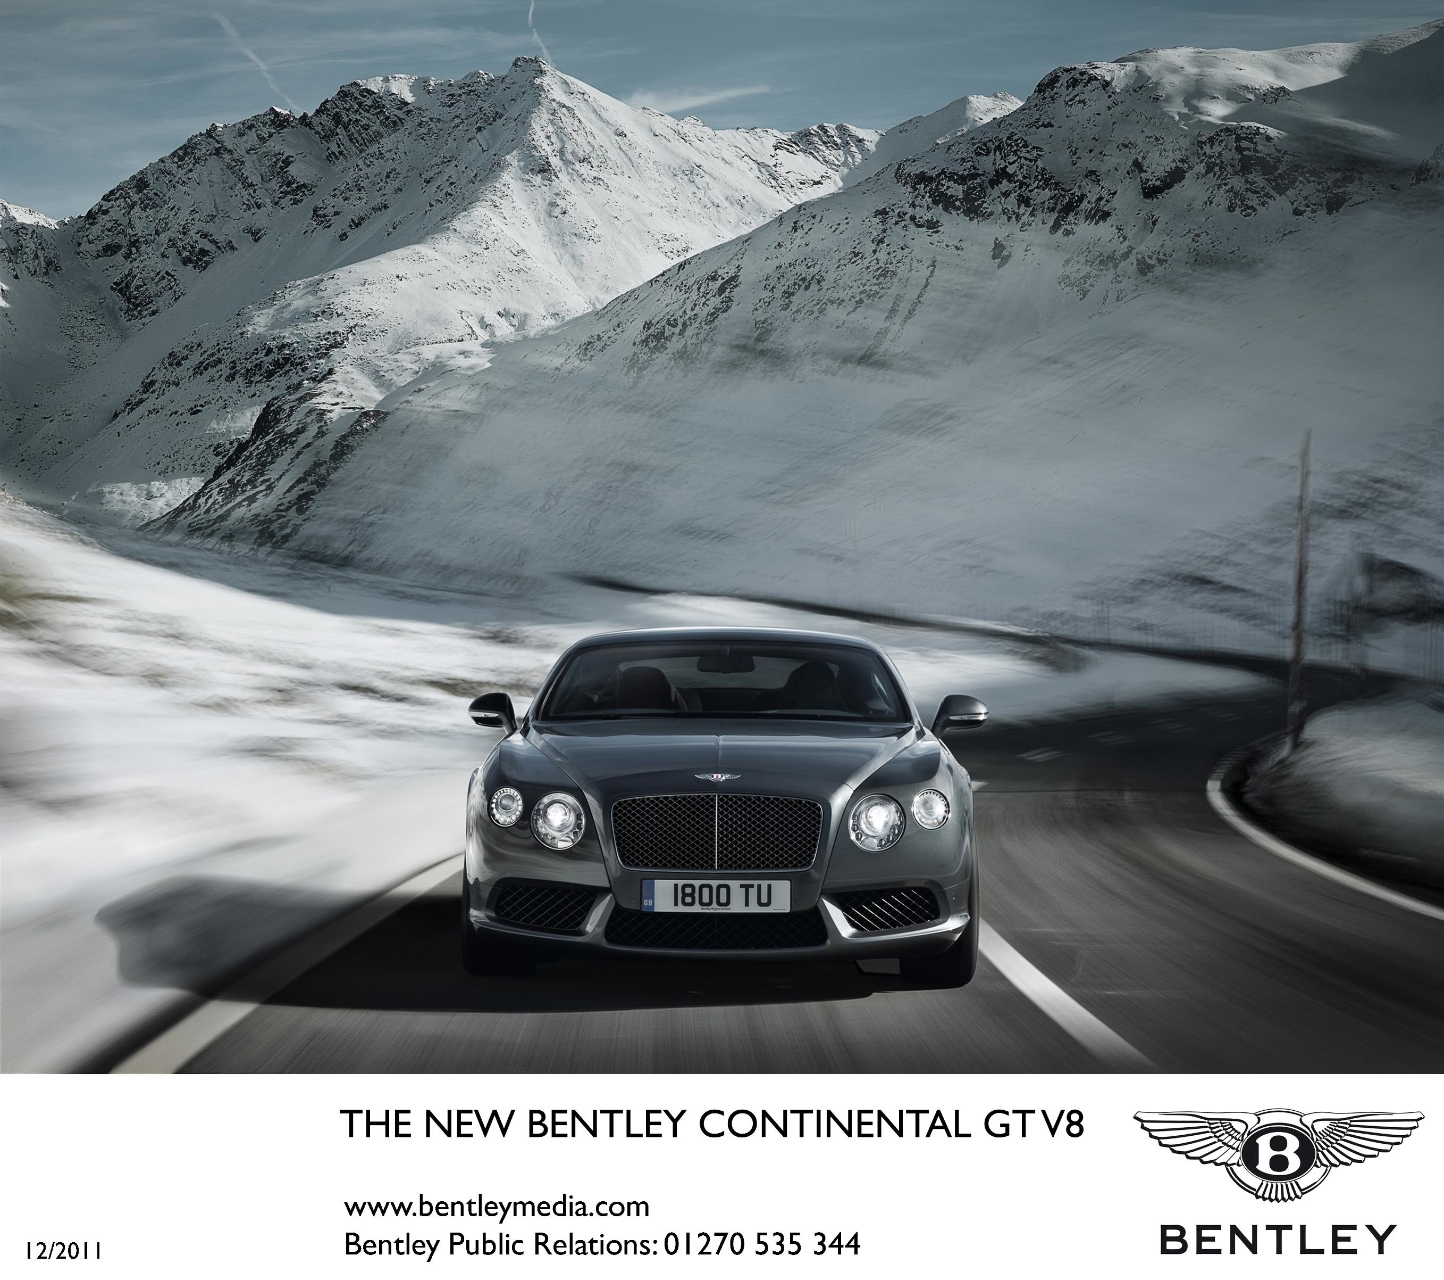 2012 Bentley Flying Spur W12 Diamond Black: Bentley Continental GT V8 Official Info And Photos